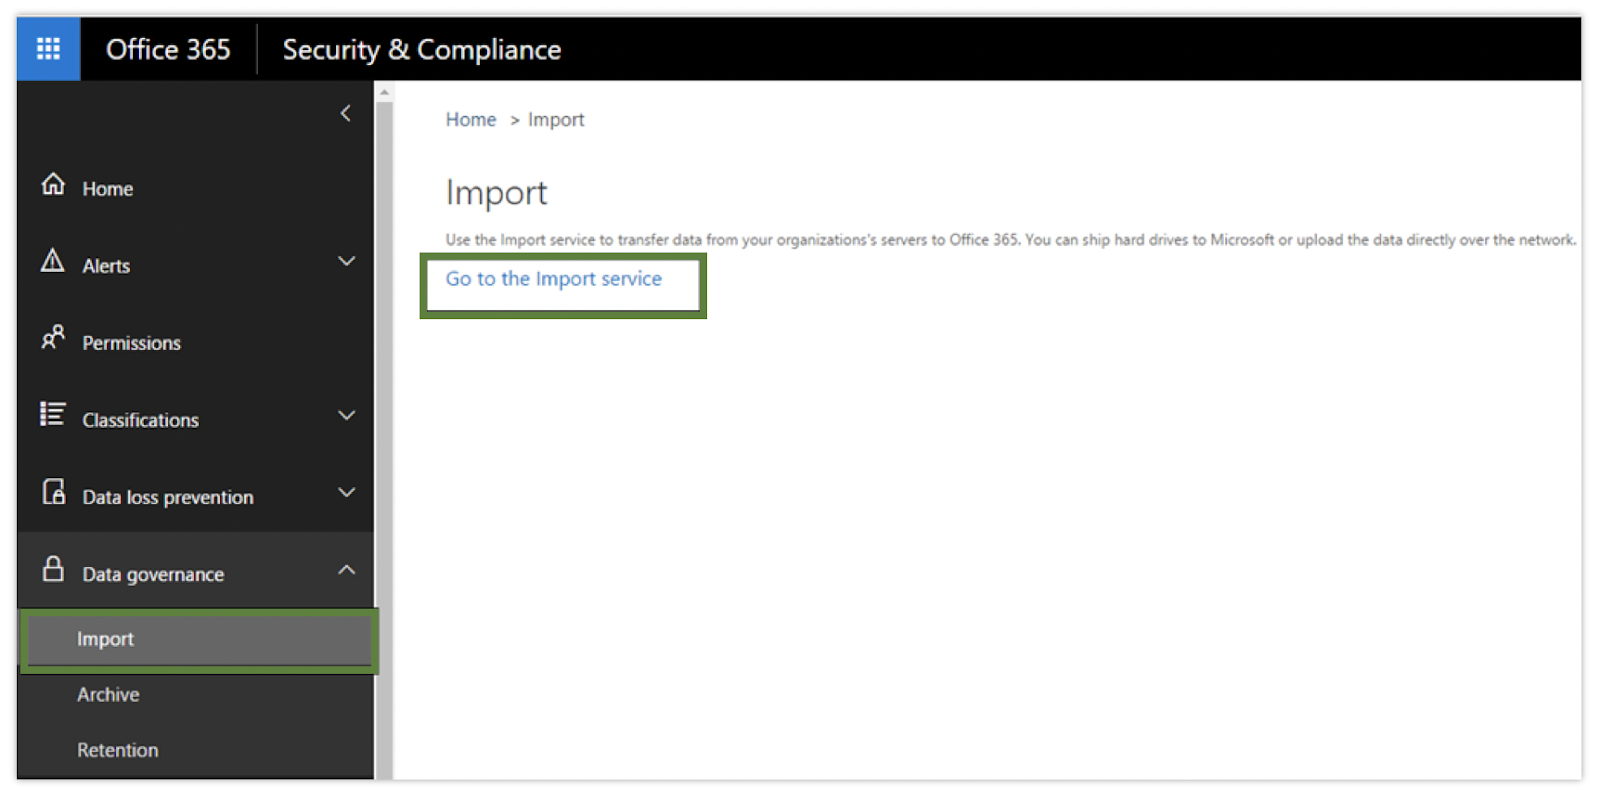 security & compliance center window of O365